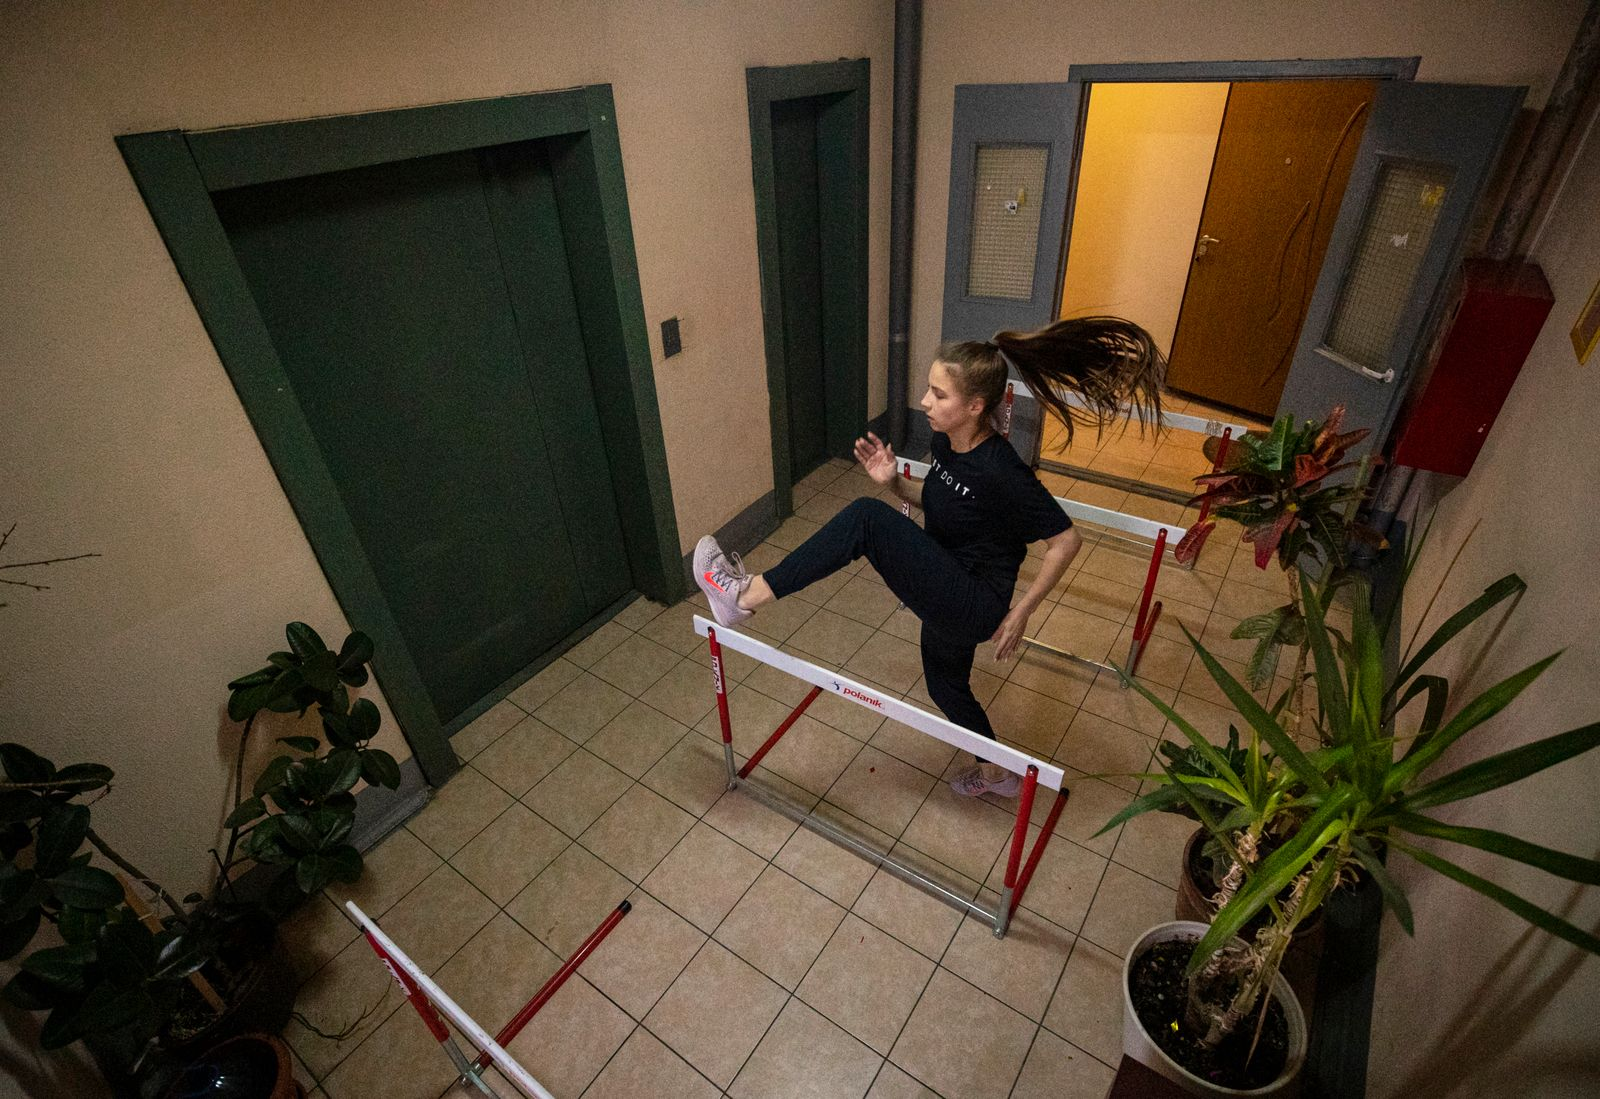 Russian athletes in home training due to coronavirus COVID-19 pandemic